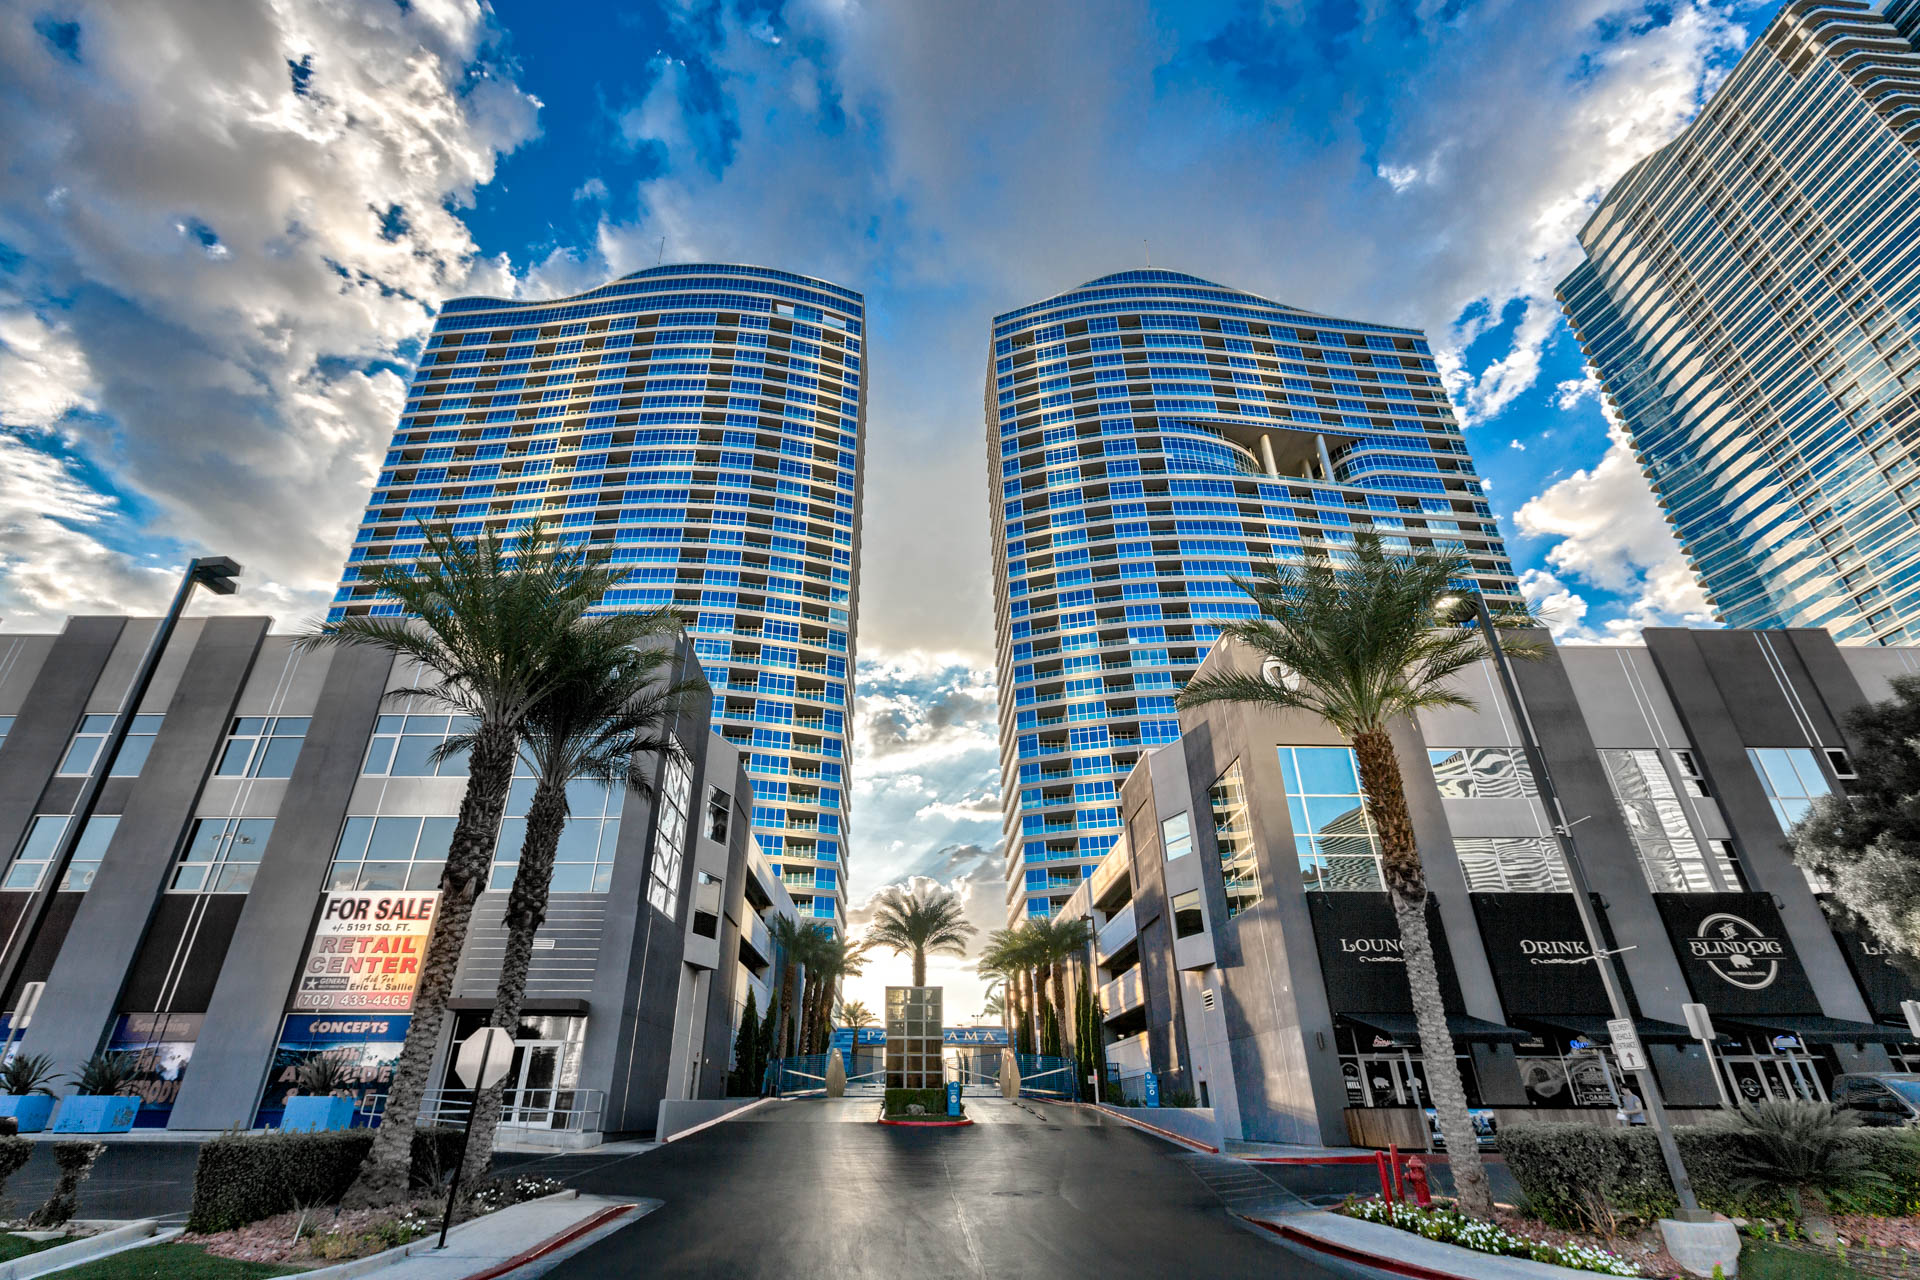 Panorama-Towers-Condos-For-Sale-Guard-Gated-Entry-4575-Dean-Martin-Drive